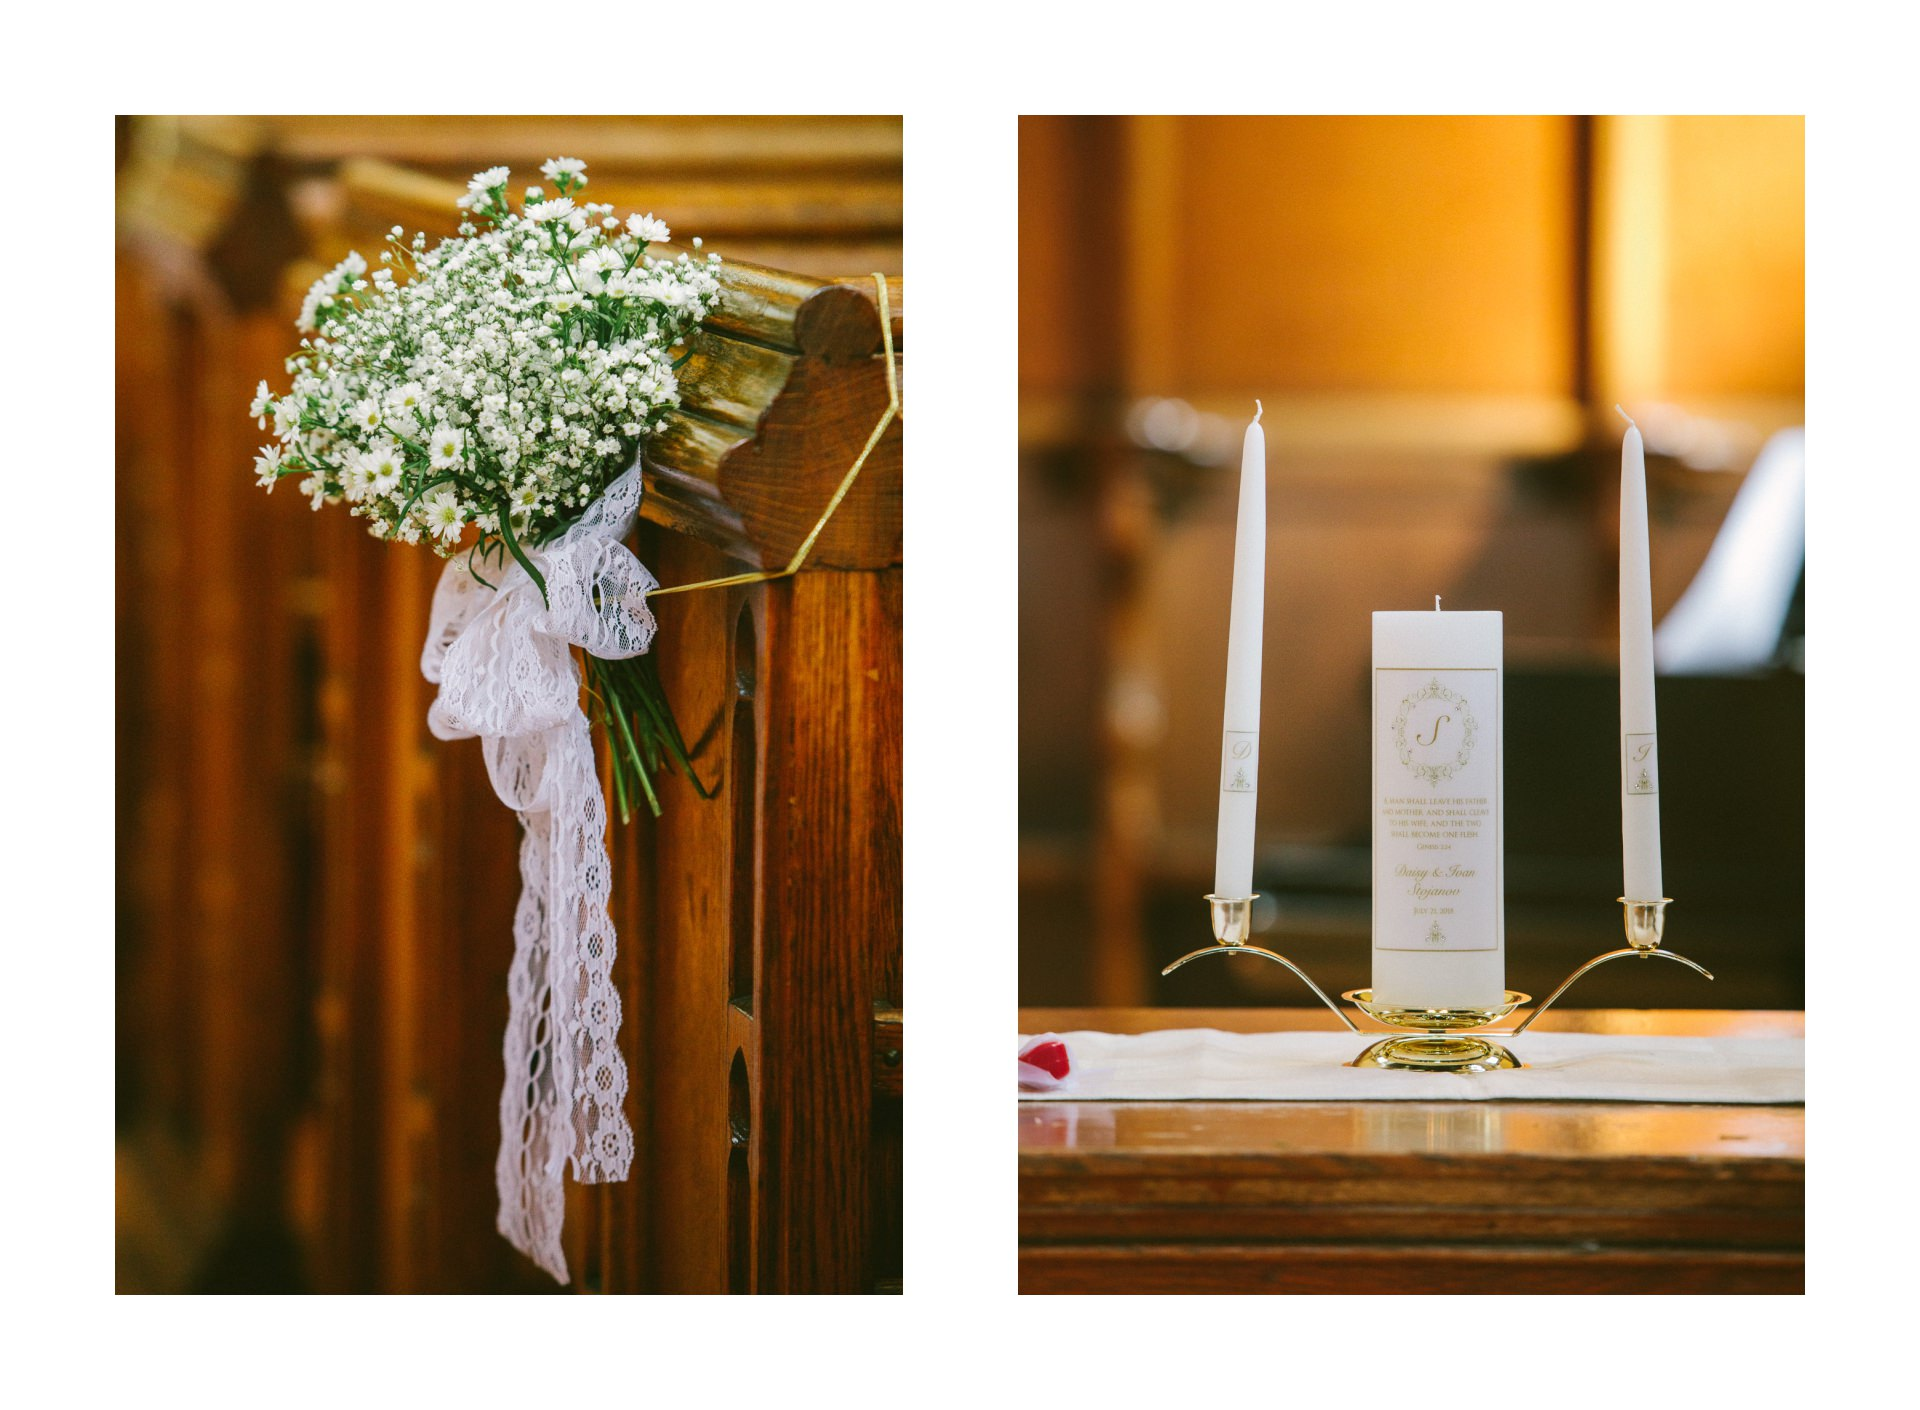 Severance Hall Wedding Photographer in Cleveland 18.jpg